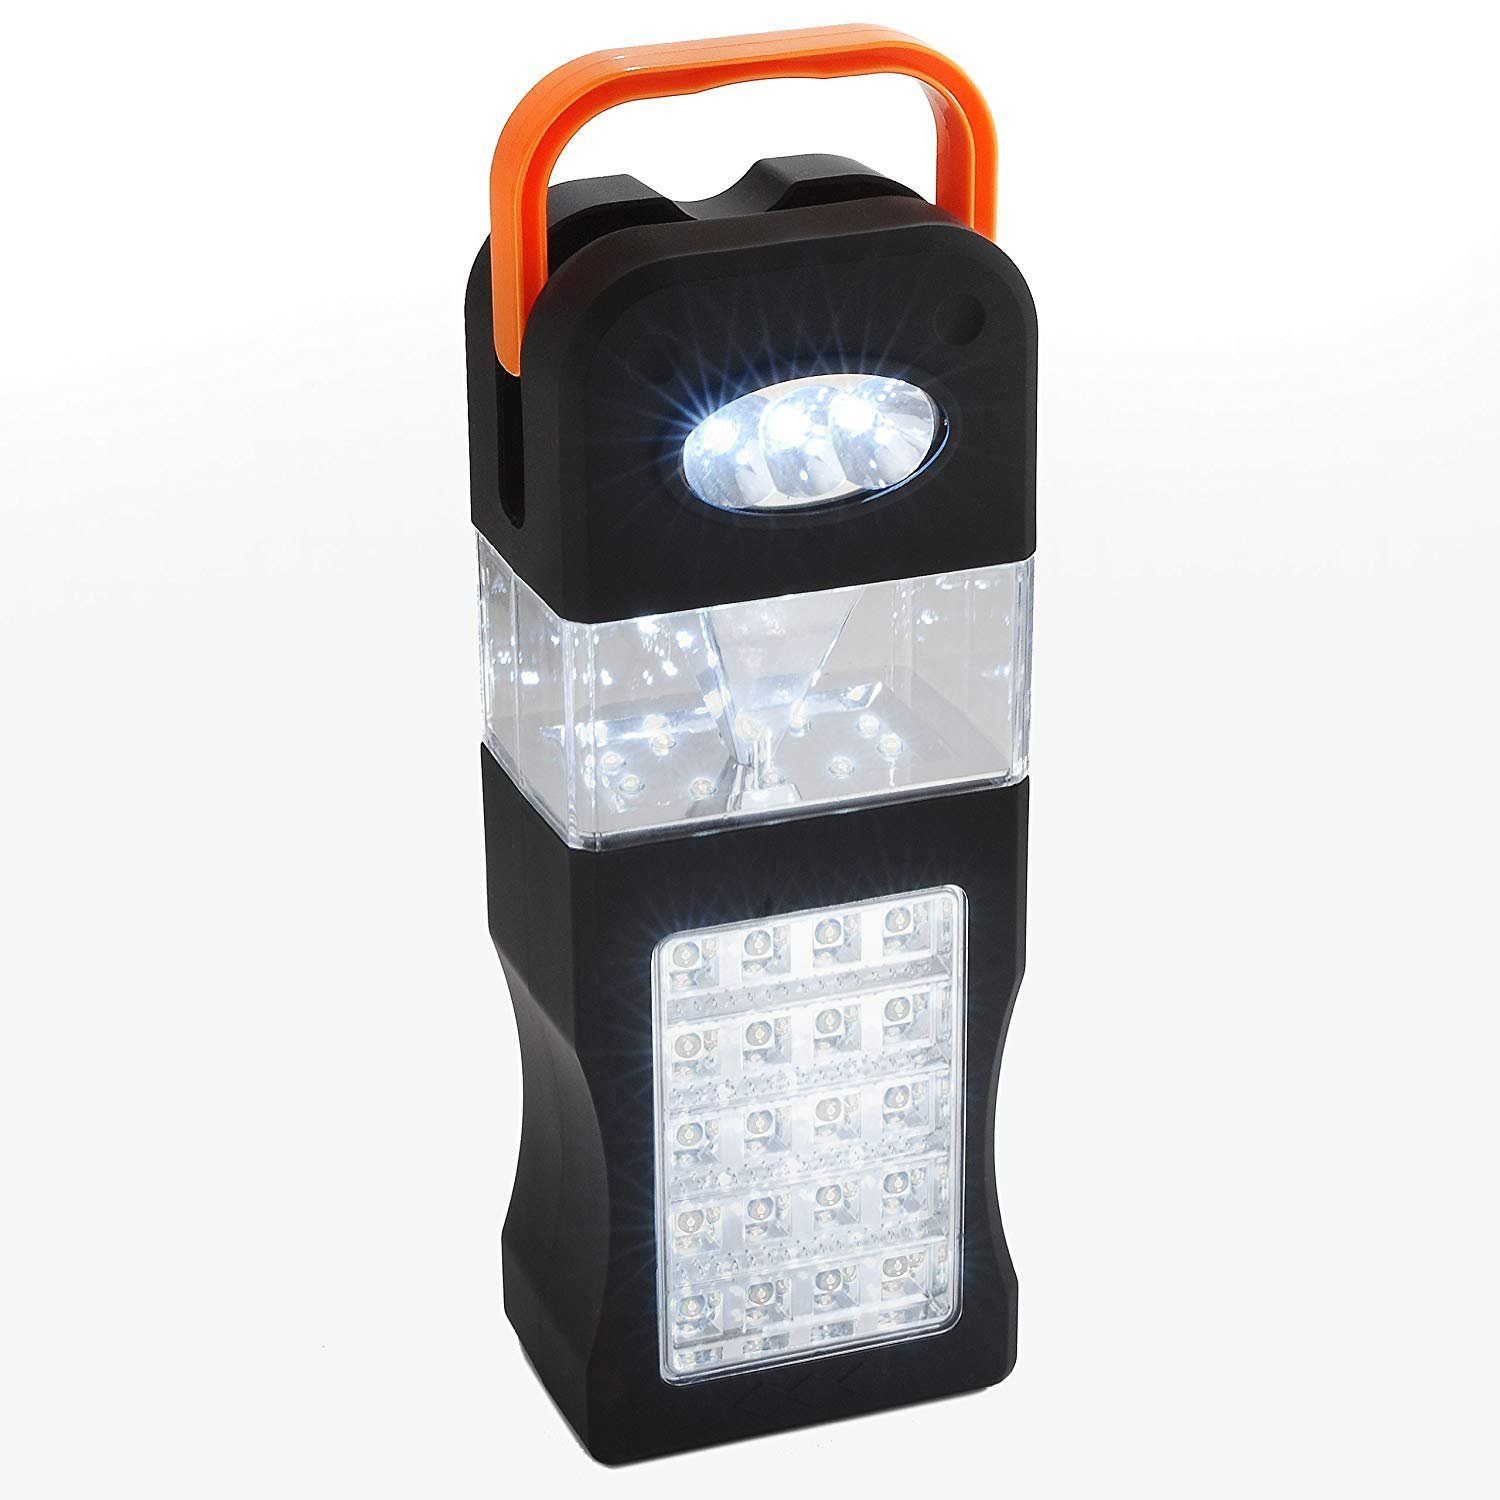 Camping Lantern with 33 LEDs – Provides 10 Hours of Bright Illumination – Carrying Hanging Handle